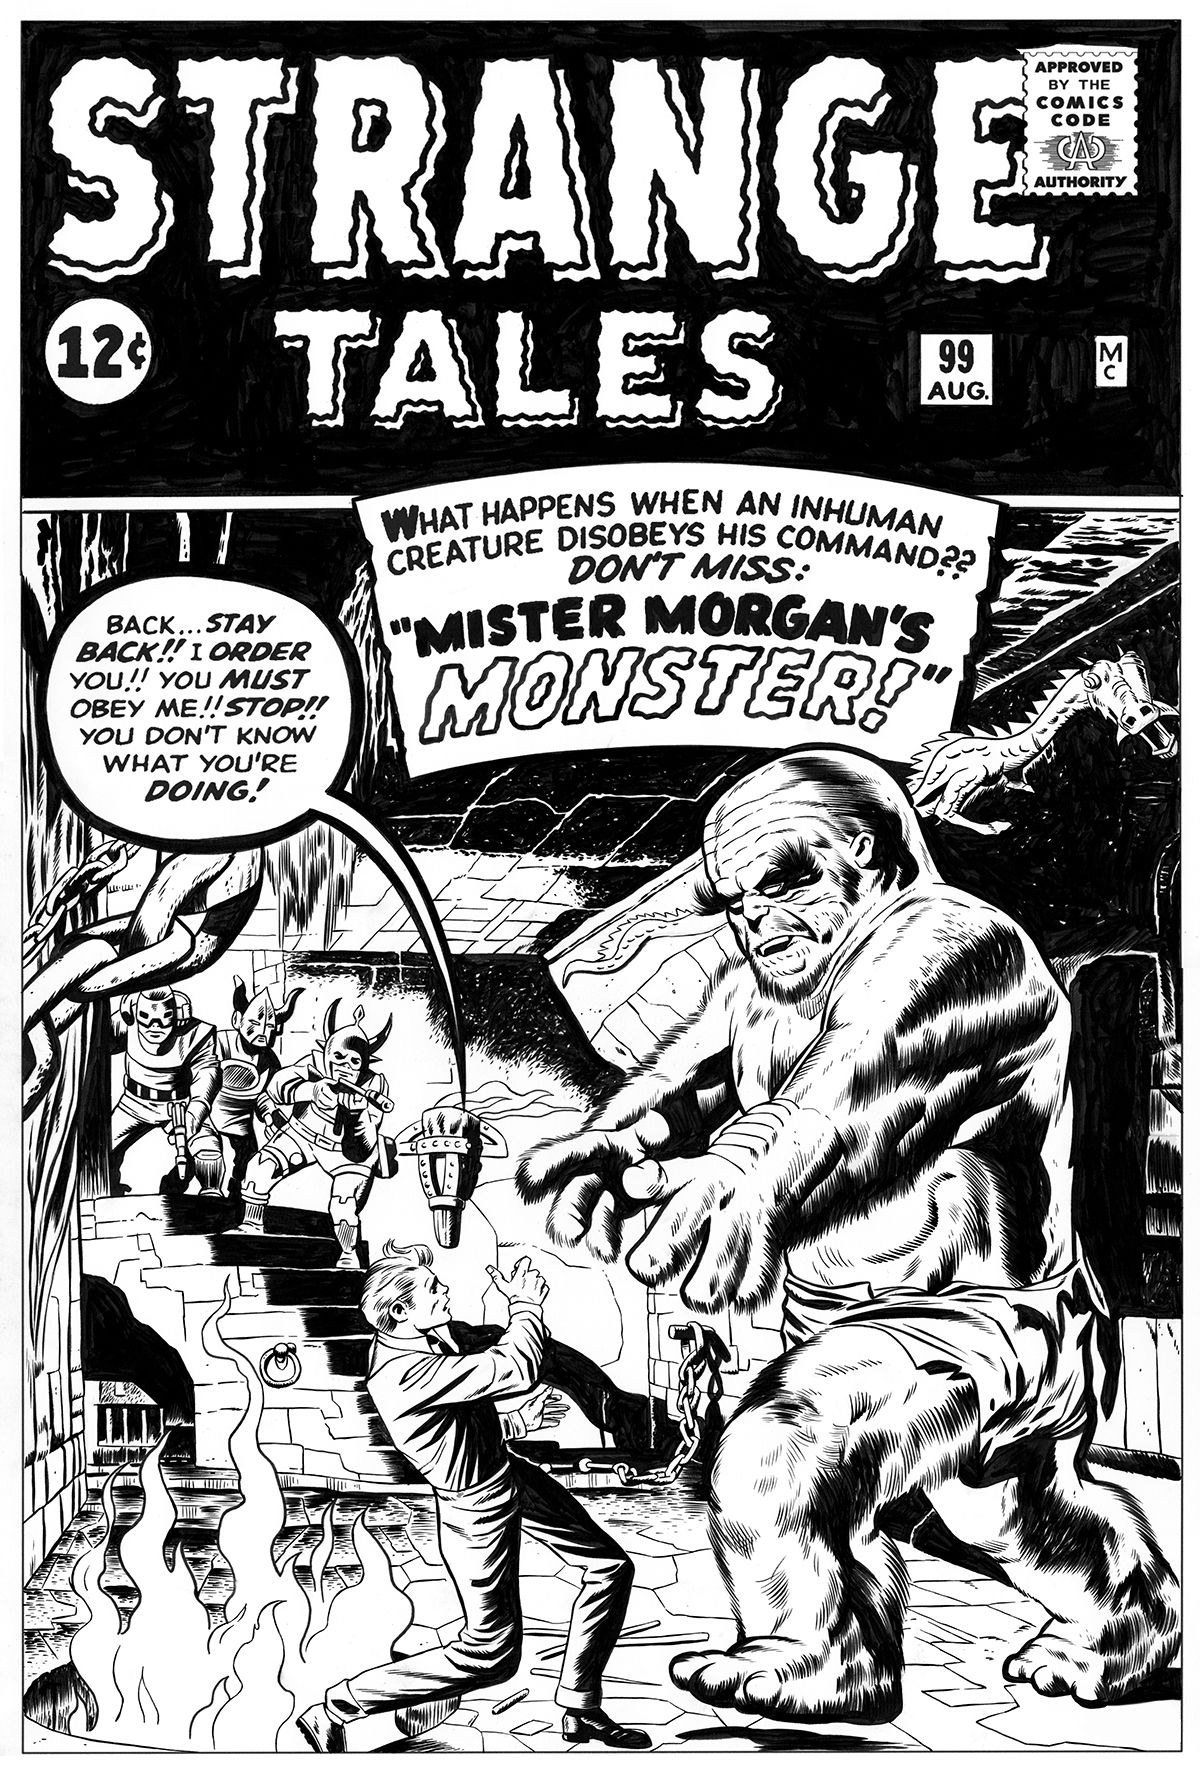 Dick ayers cover recreation